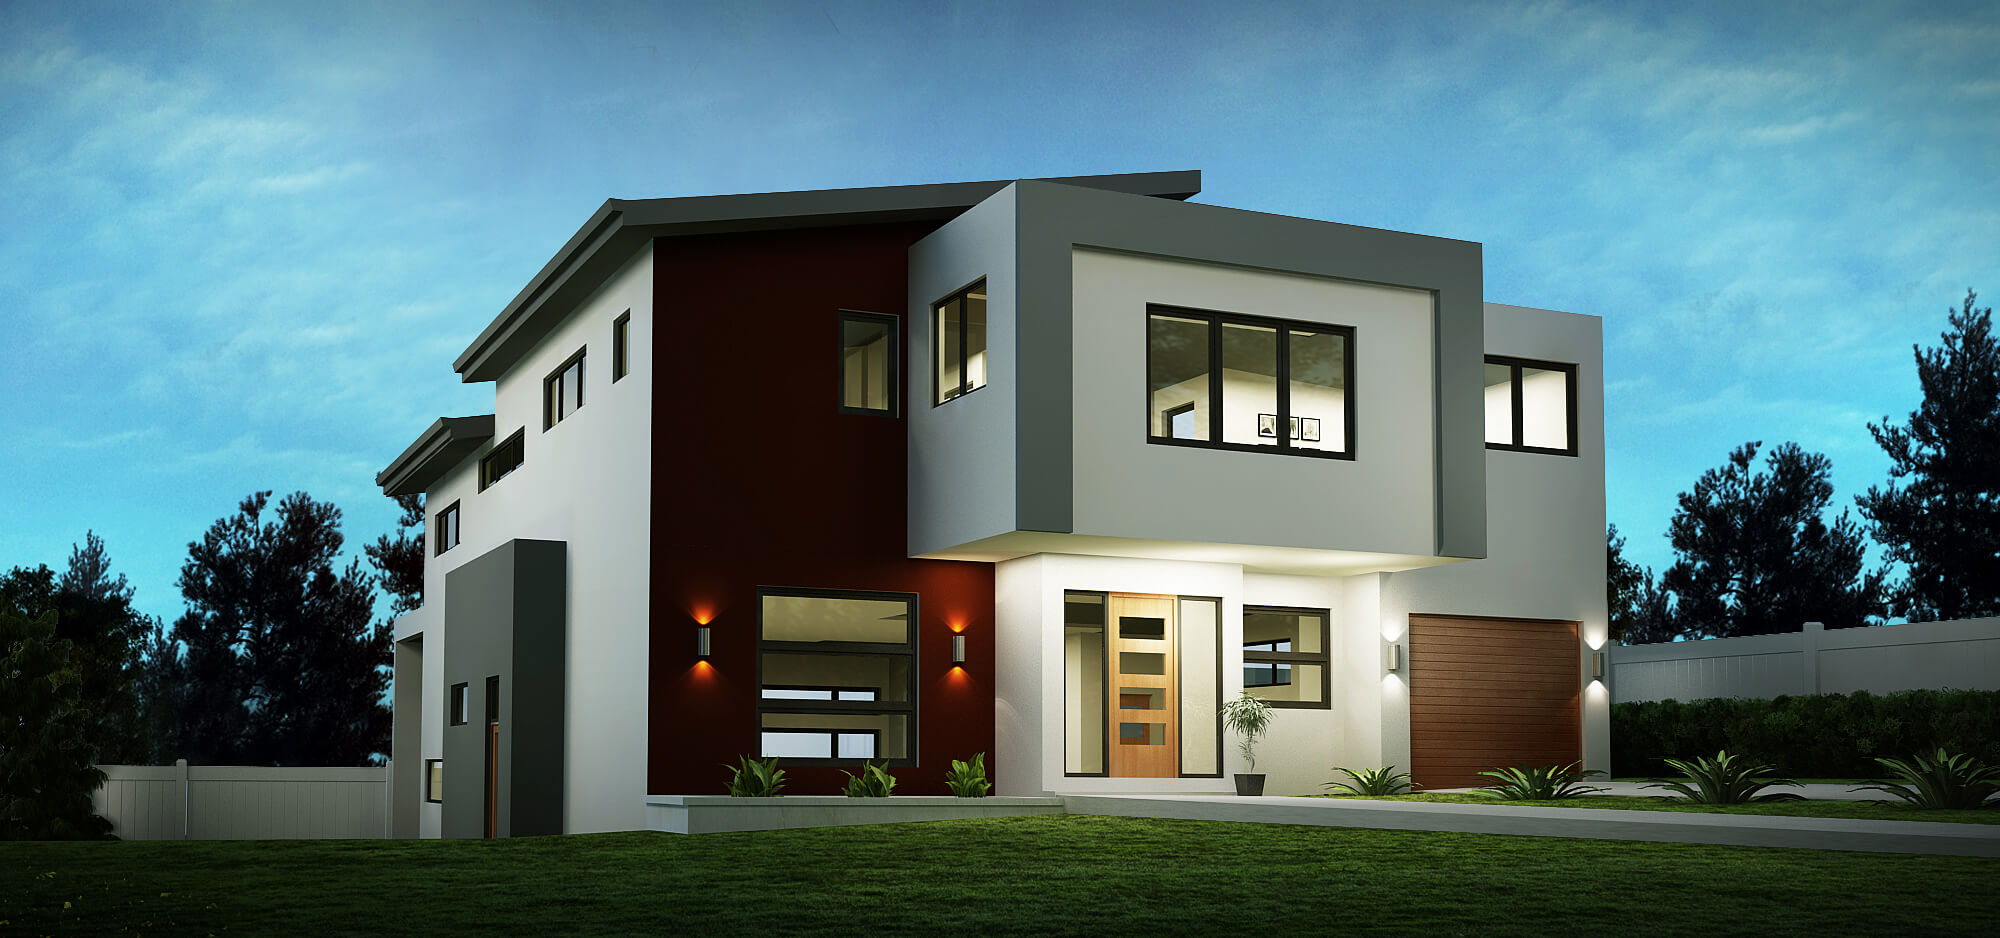 Sloping house block designs custom home designs Custom home designs